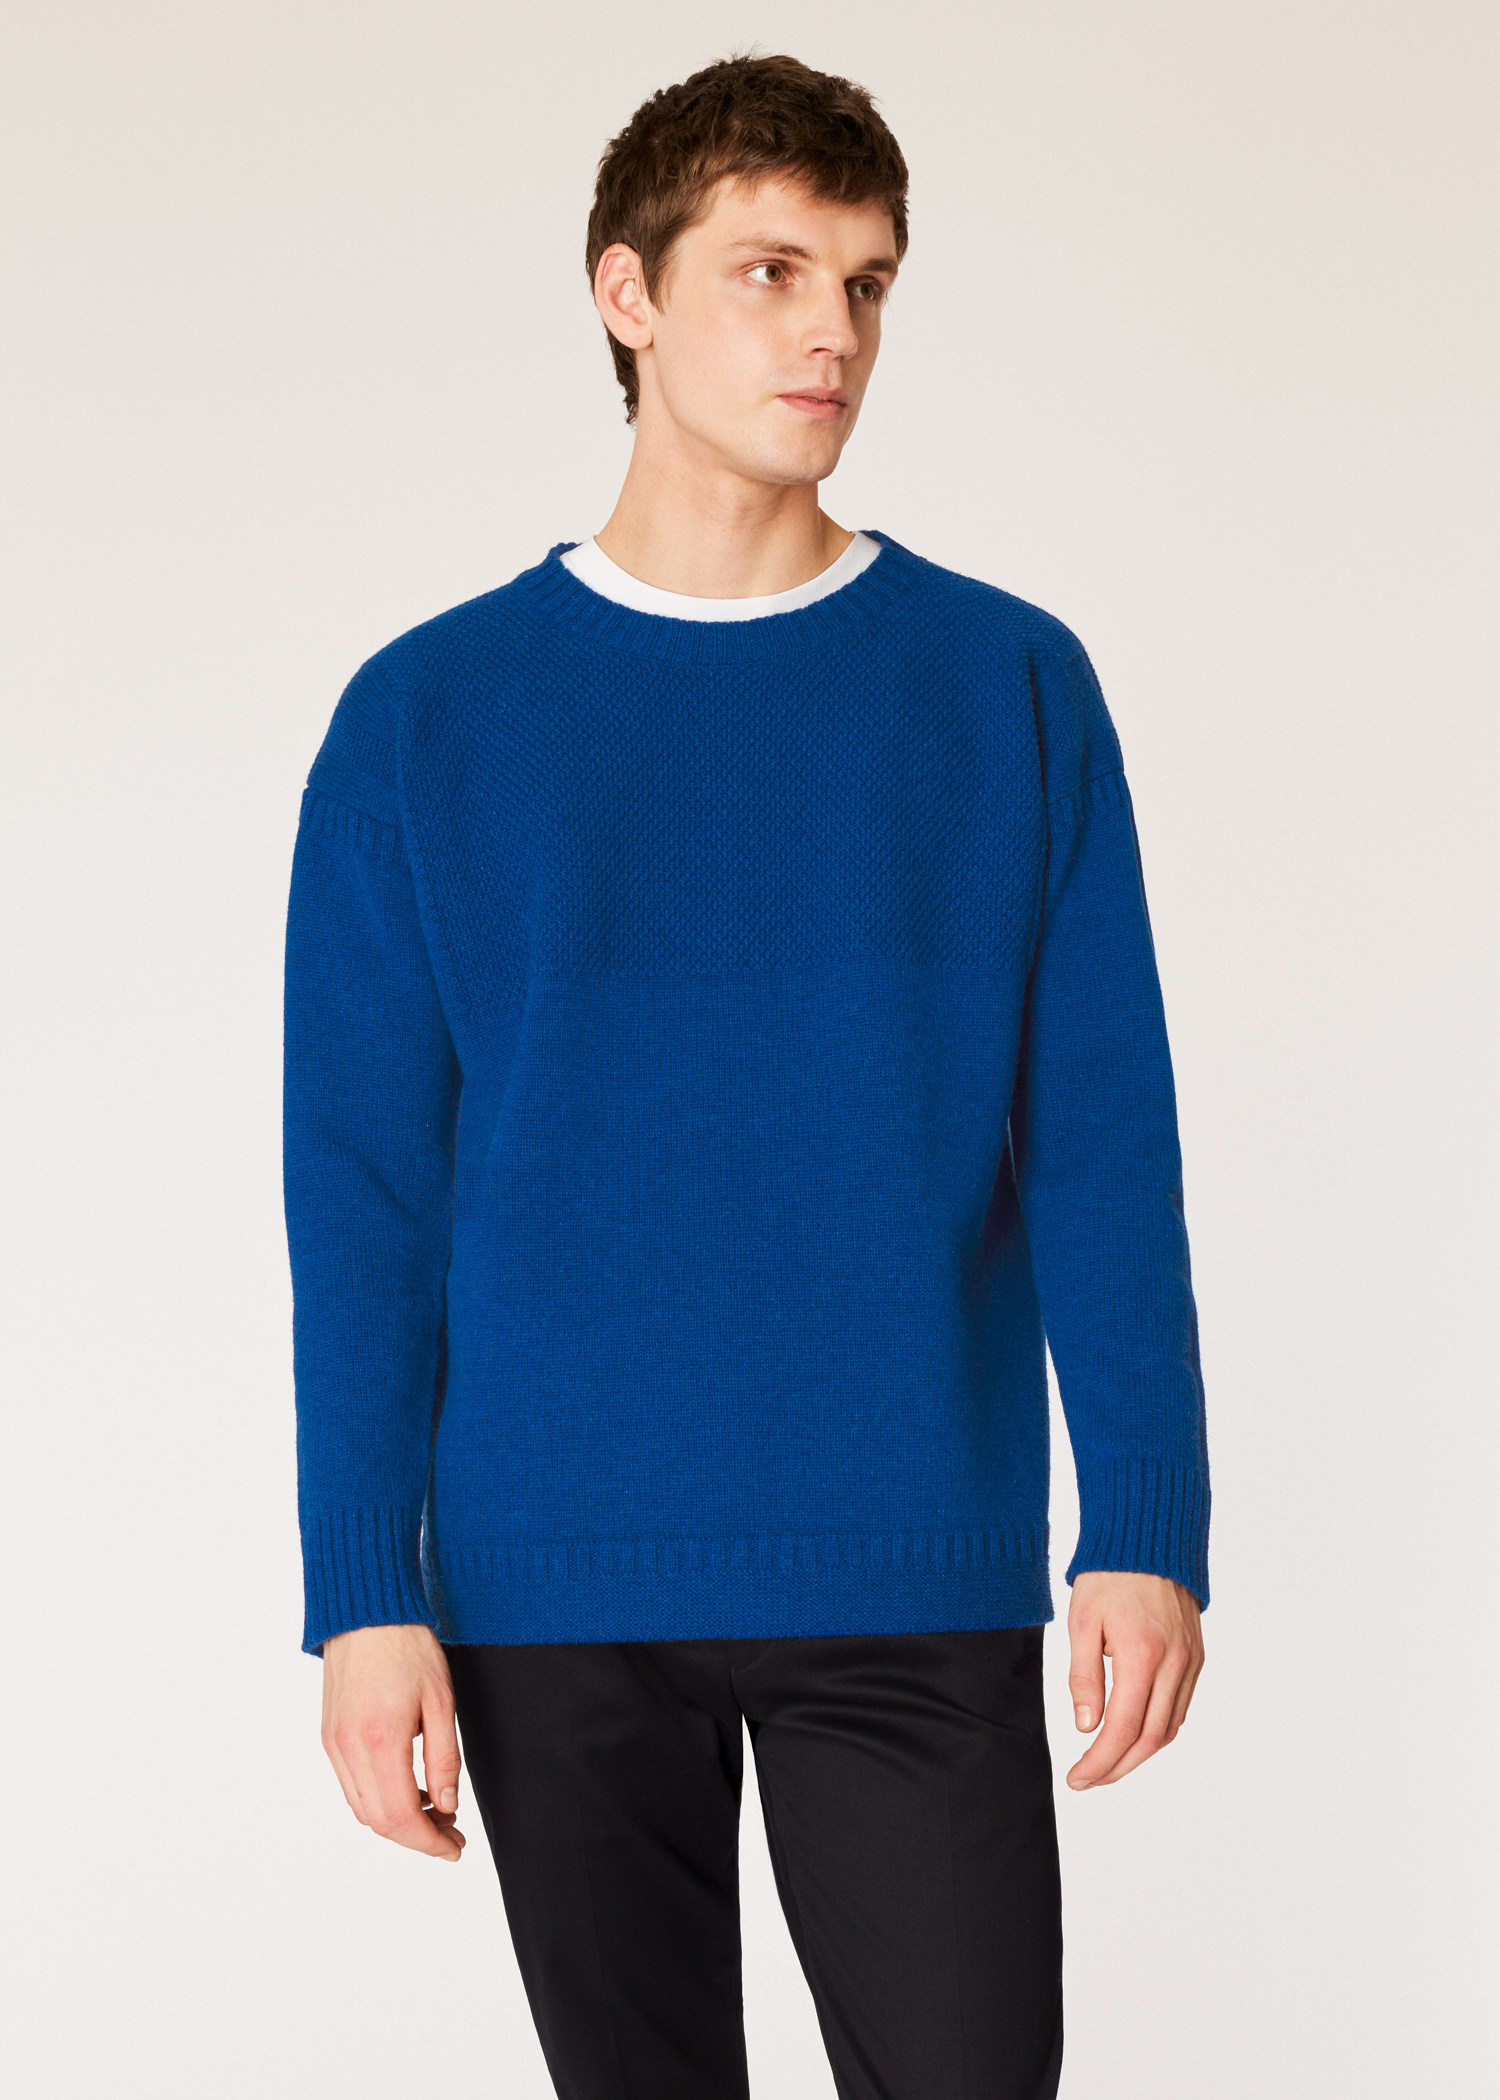 Model front close up - Men s Blue Lambswool Moss-Stitch Crew Neck Sweater  Paul Smith 6309e04a4